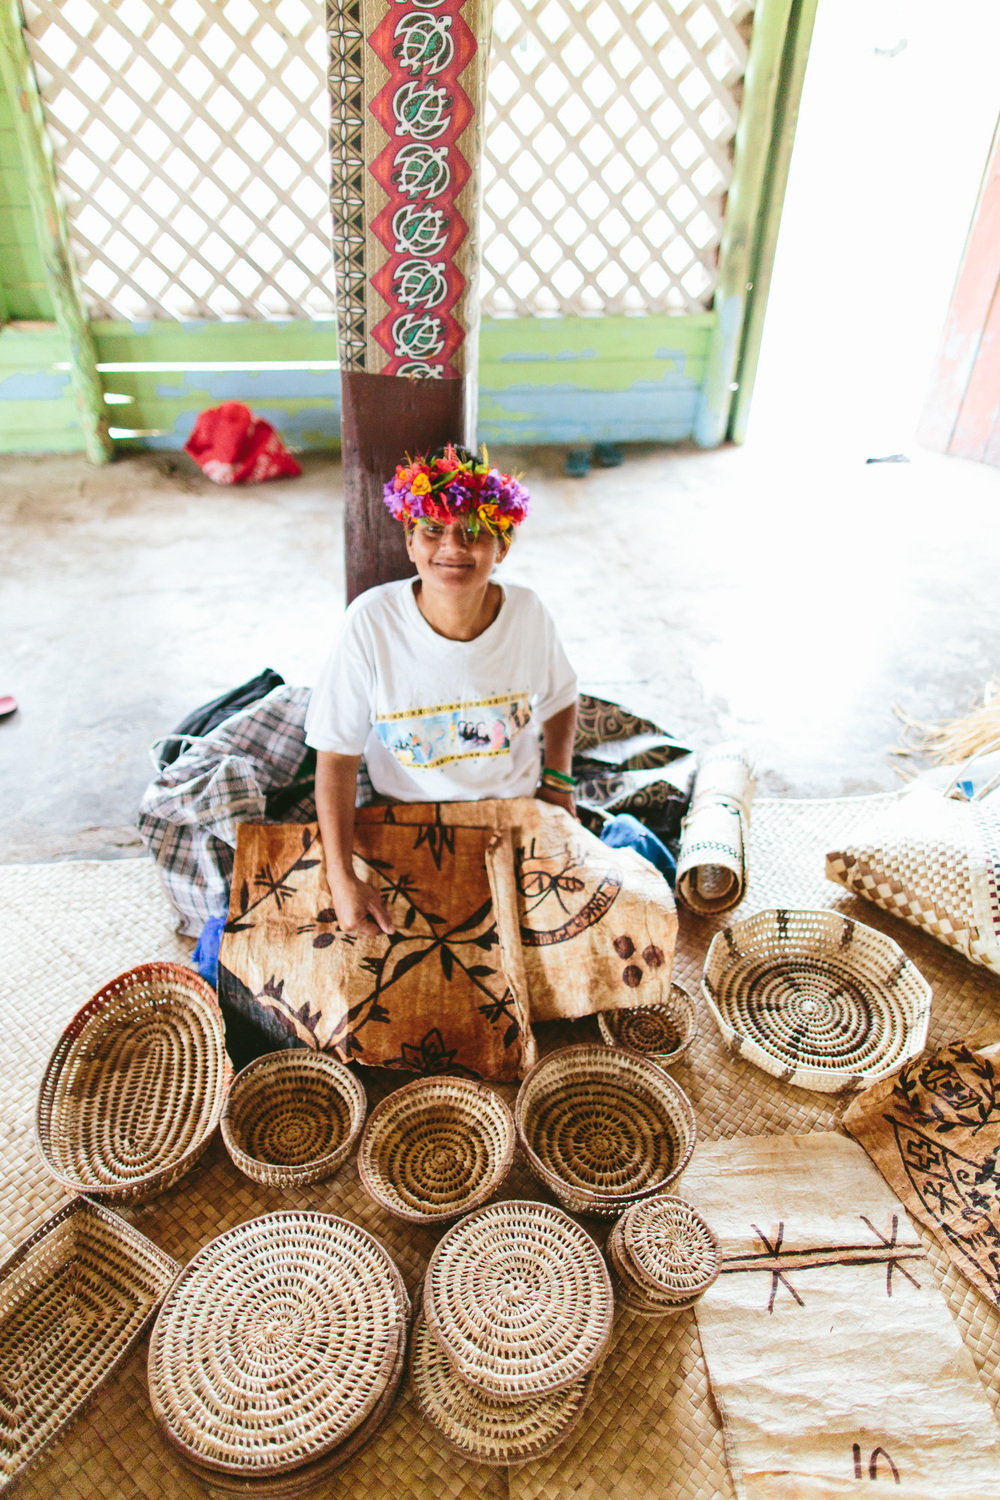 Local woven handicraft for sale at the village - The Remote Resort Fiji Islands